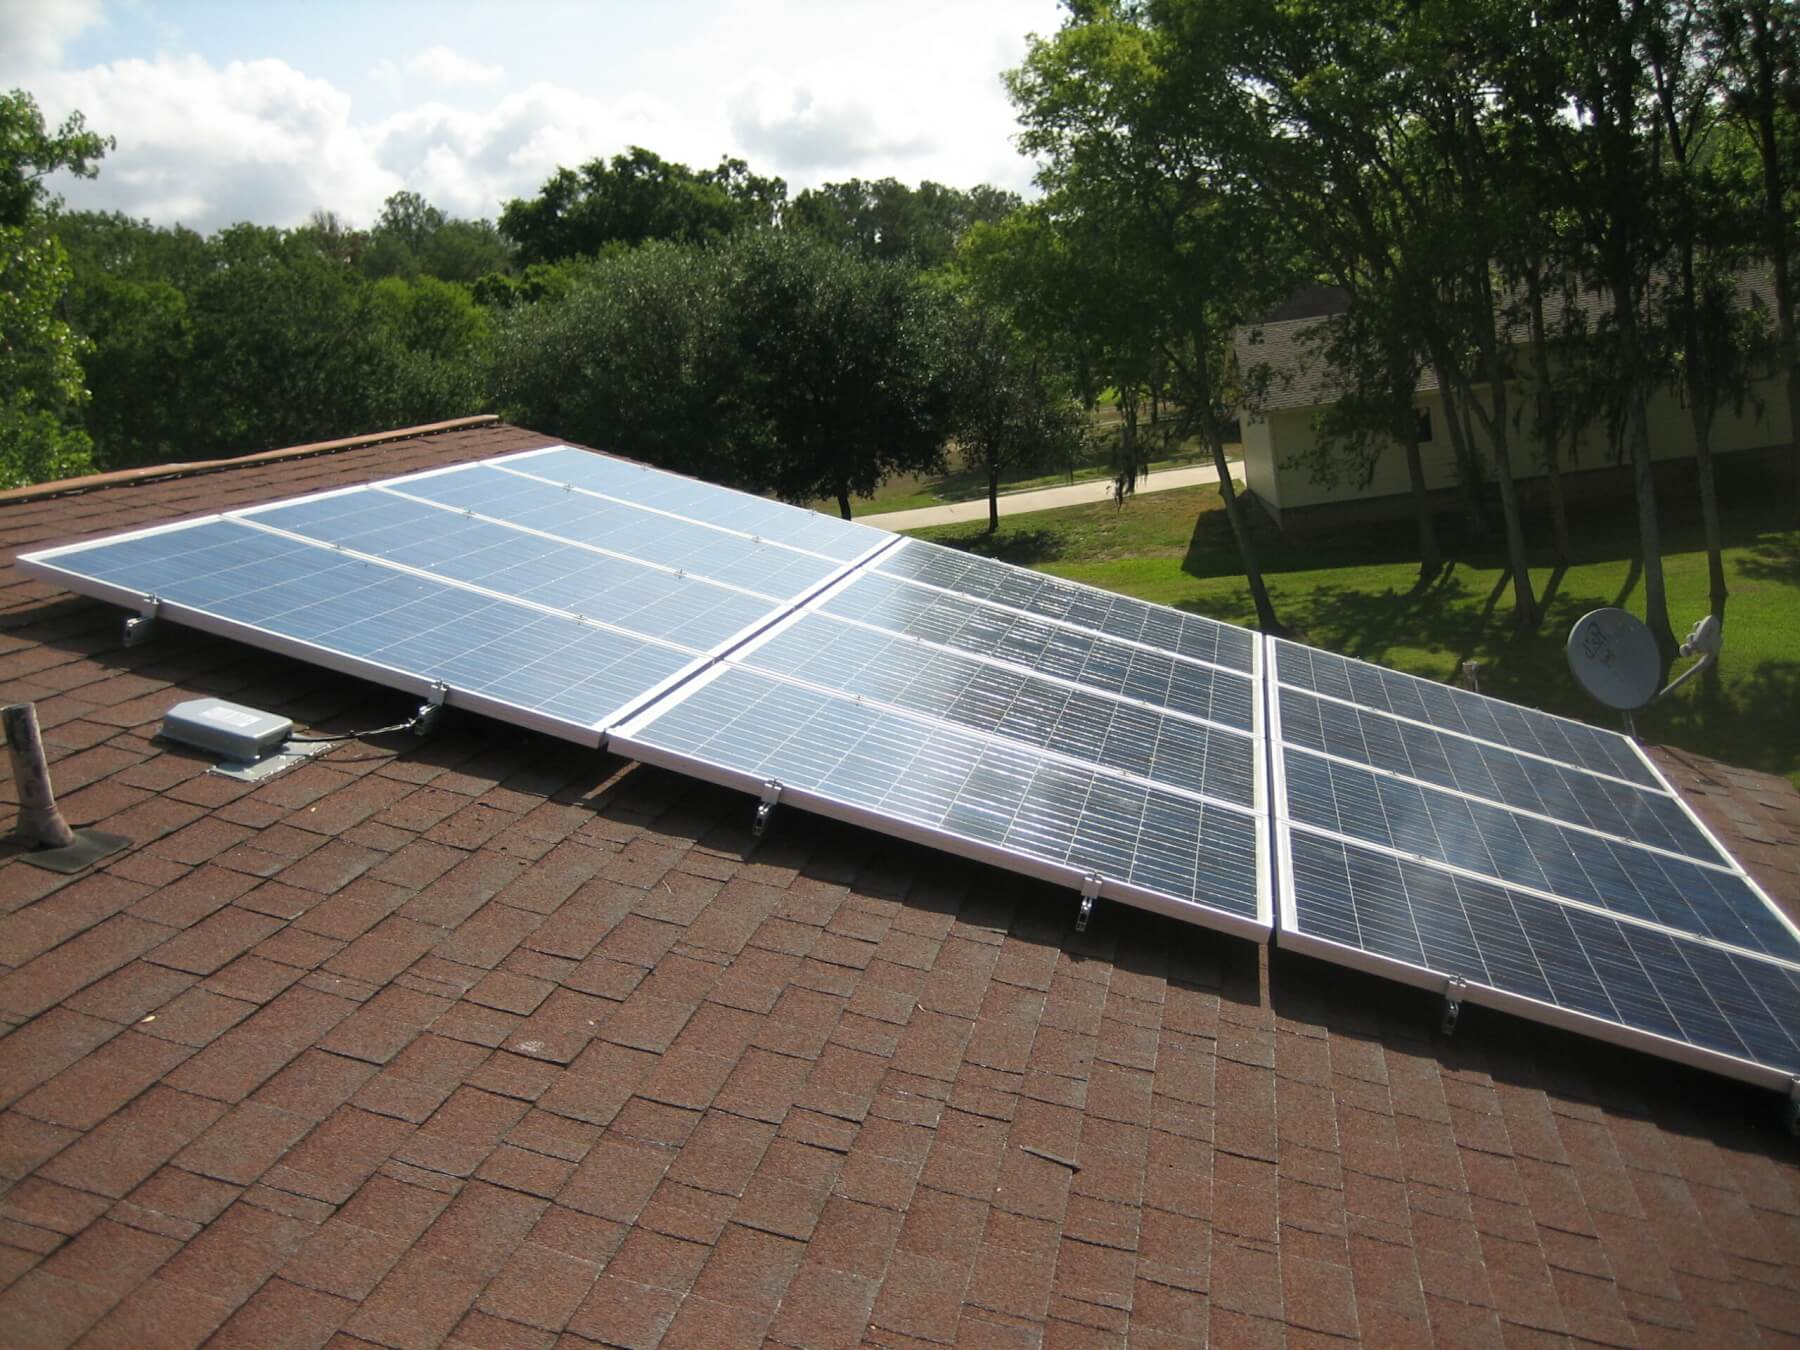 House roof with newly installed solar panels